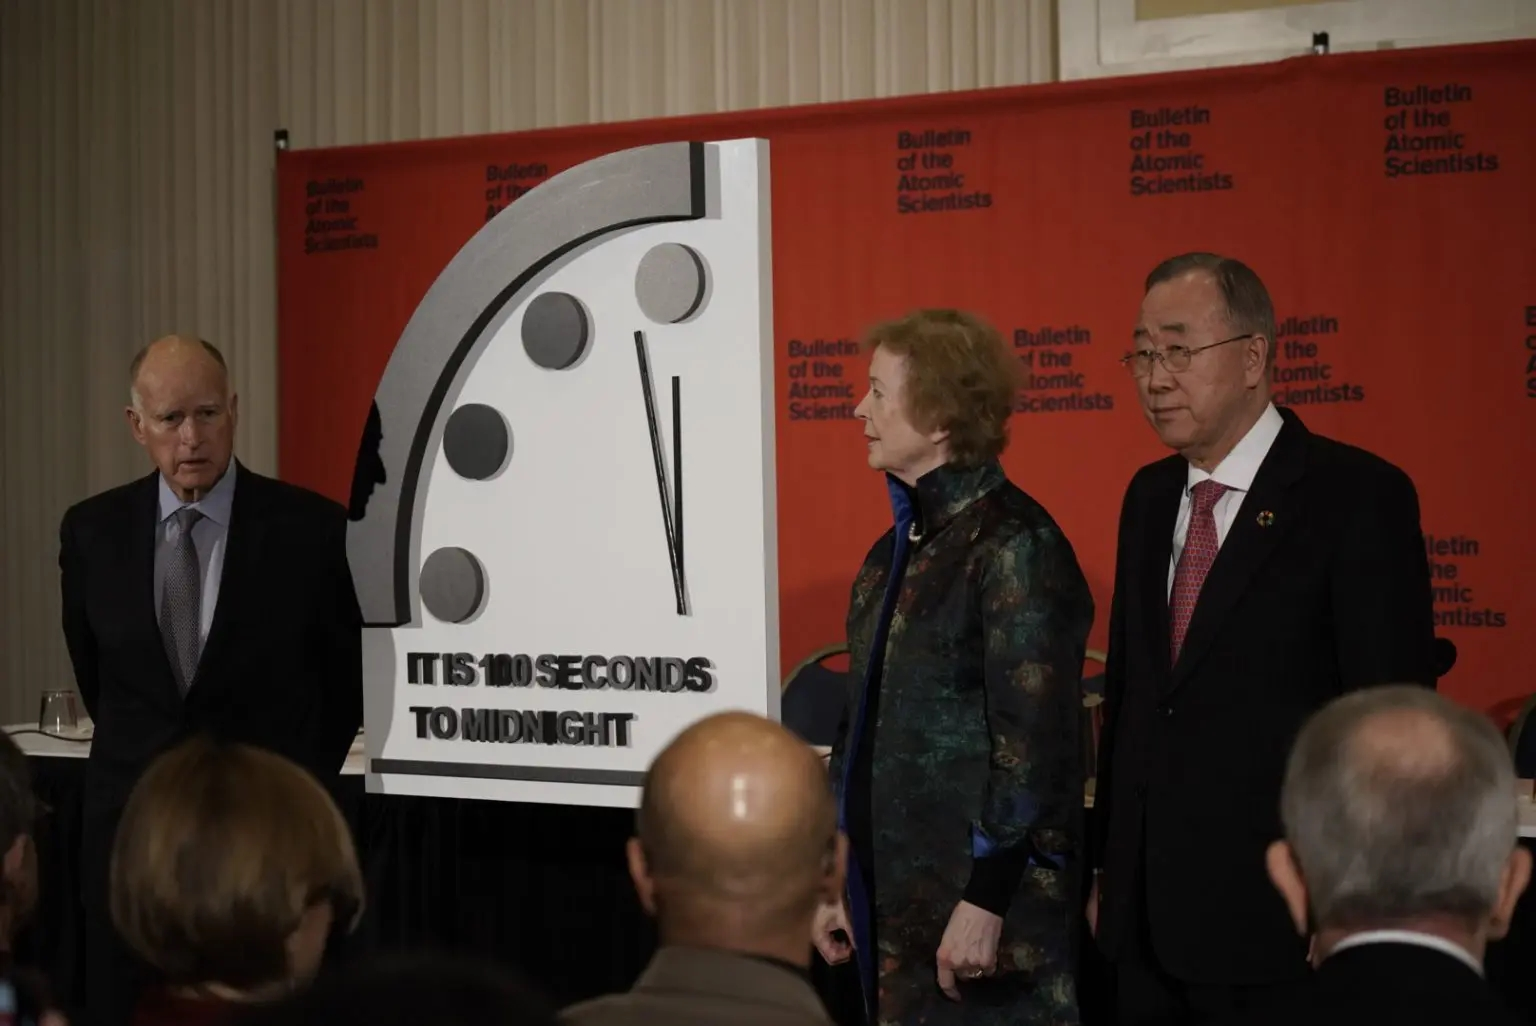 Gov. Jerry Brown, former President of Ireland Mary Robinson, fomer UN Secretary General Ban-Ki Moon at 2020 Doomsday Clock unveiling